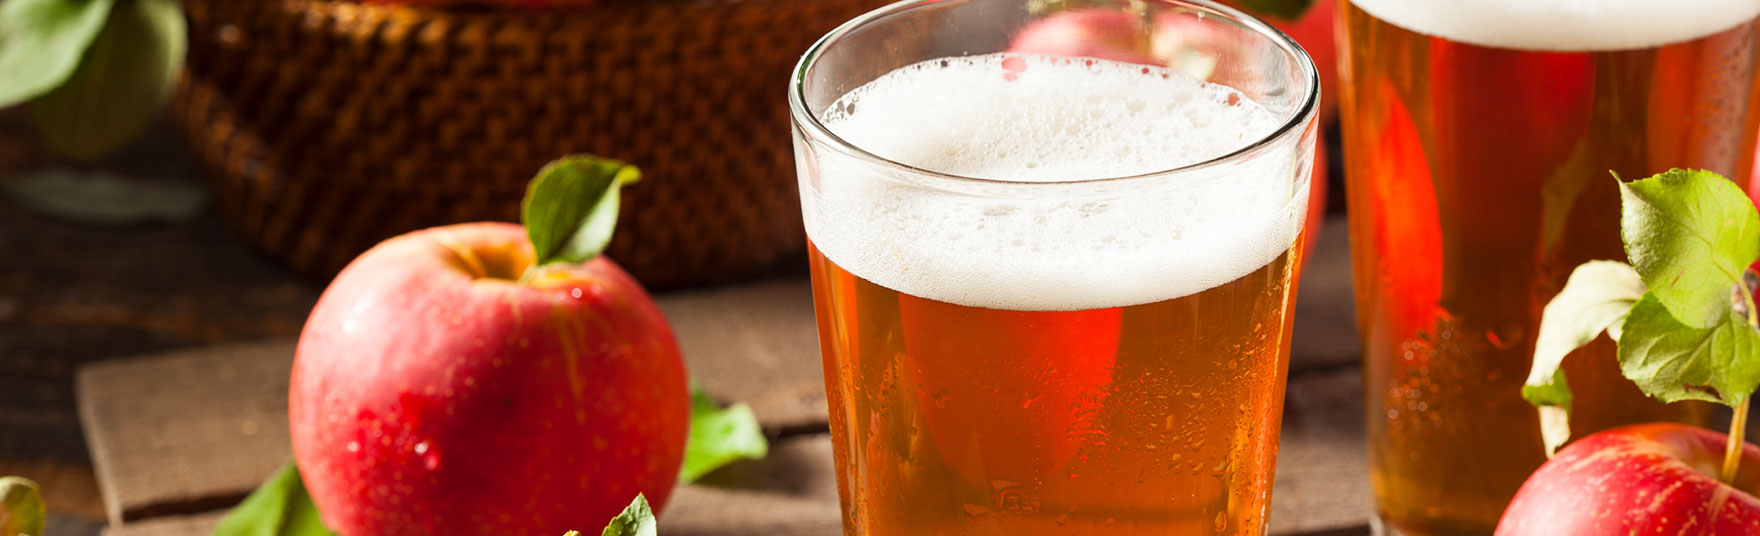 How to Make Hard Cider and Mead